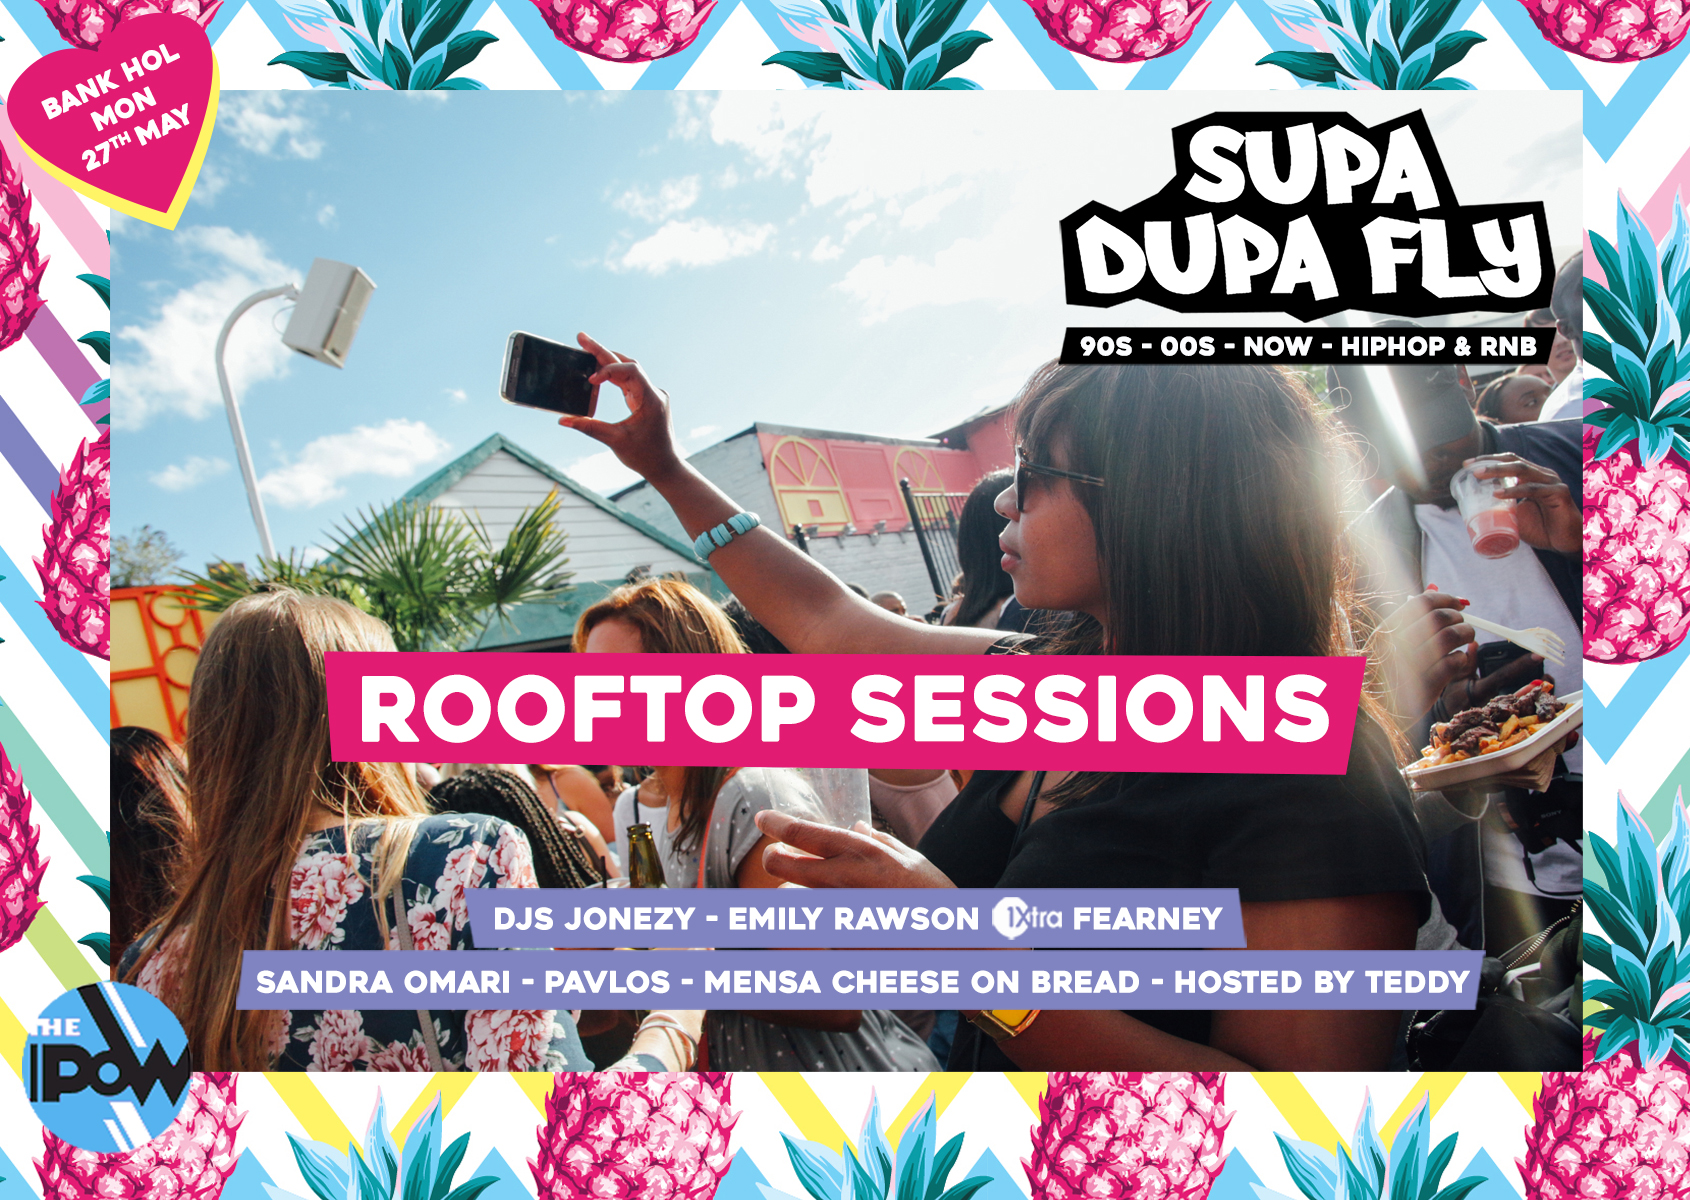 Supa Dupa Fly x Rooftop Sessions x Bank Holiday